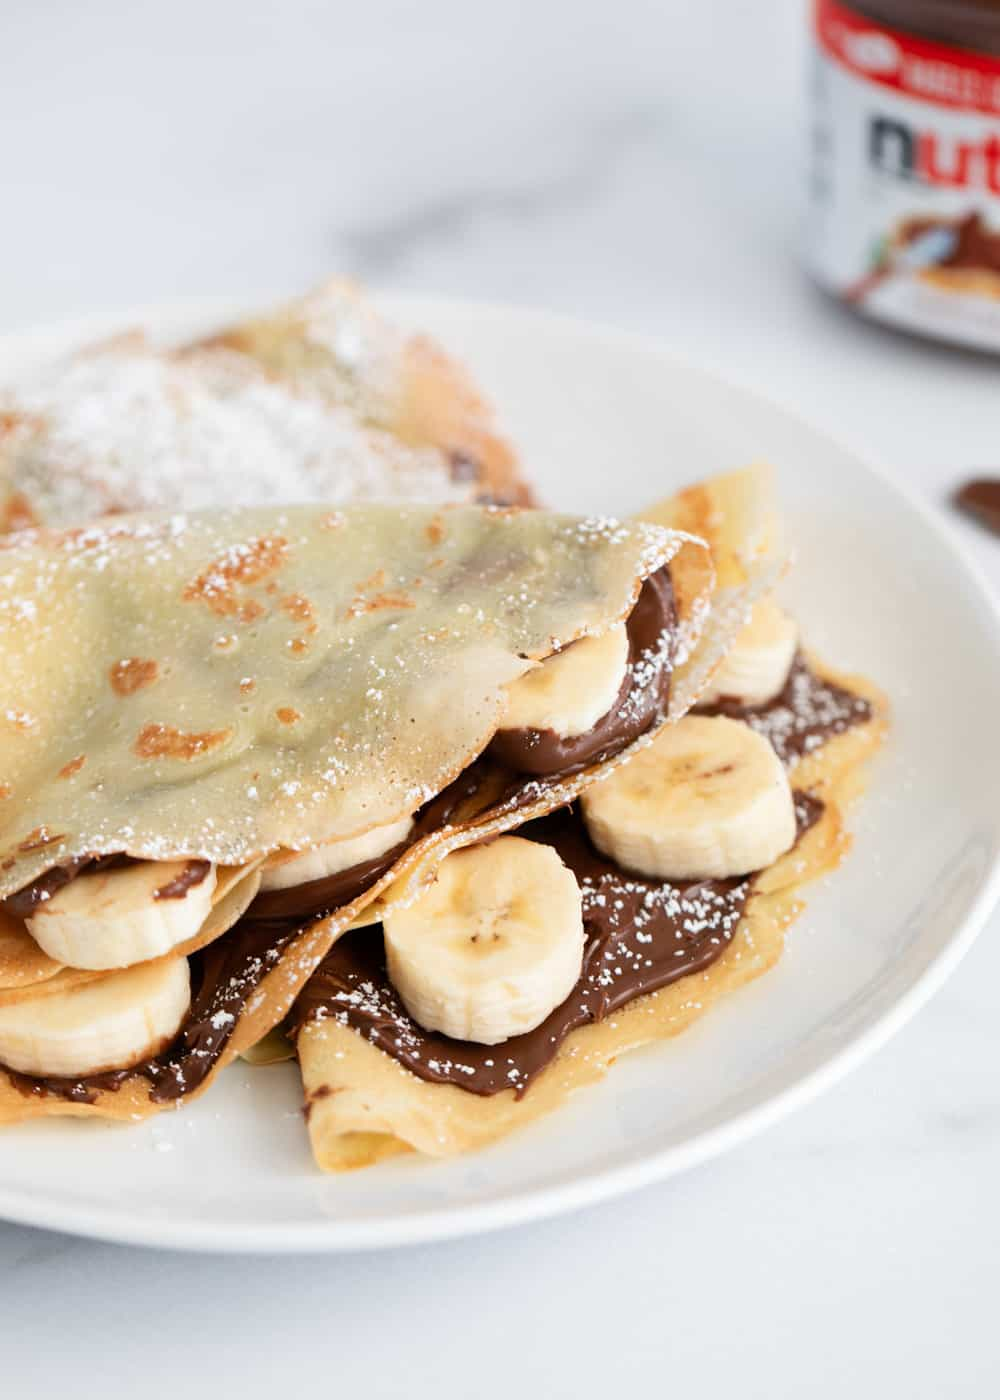 Nutella pancakes with banana on white plate